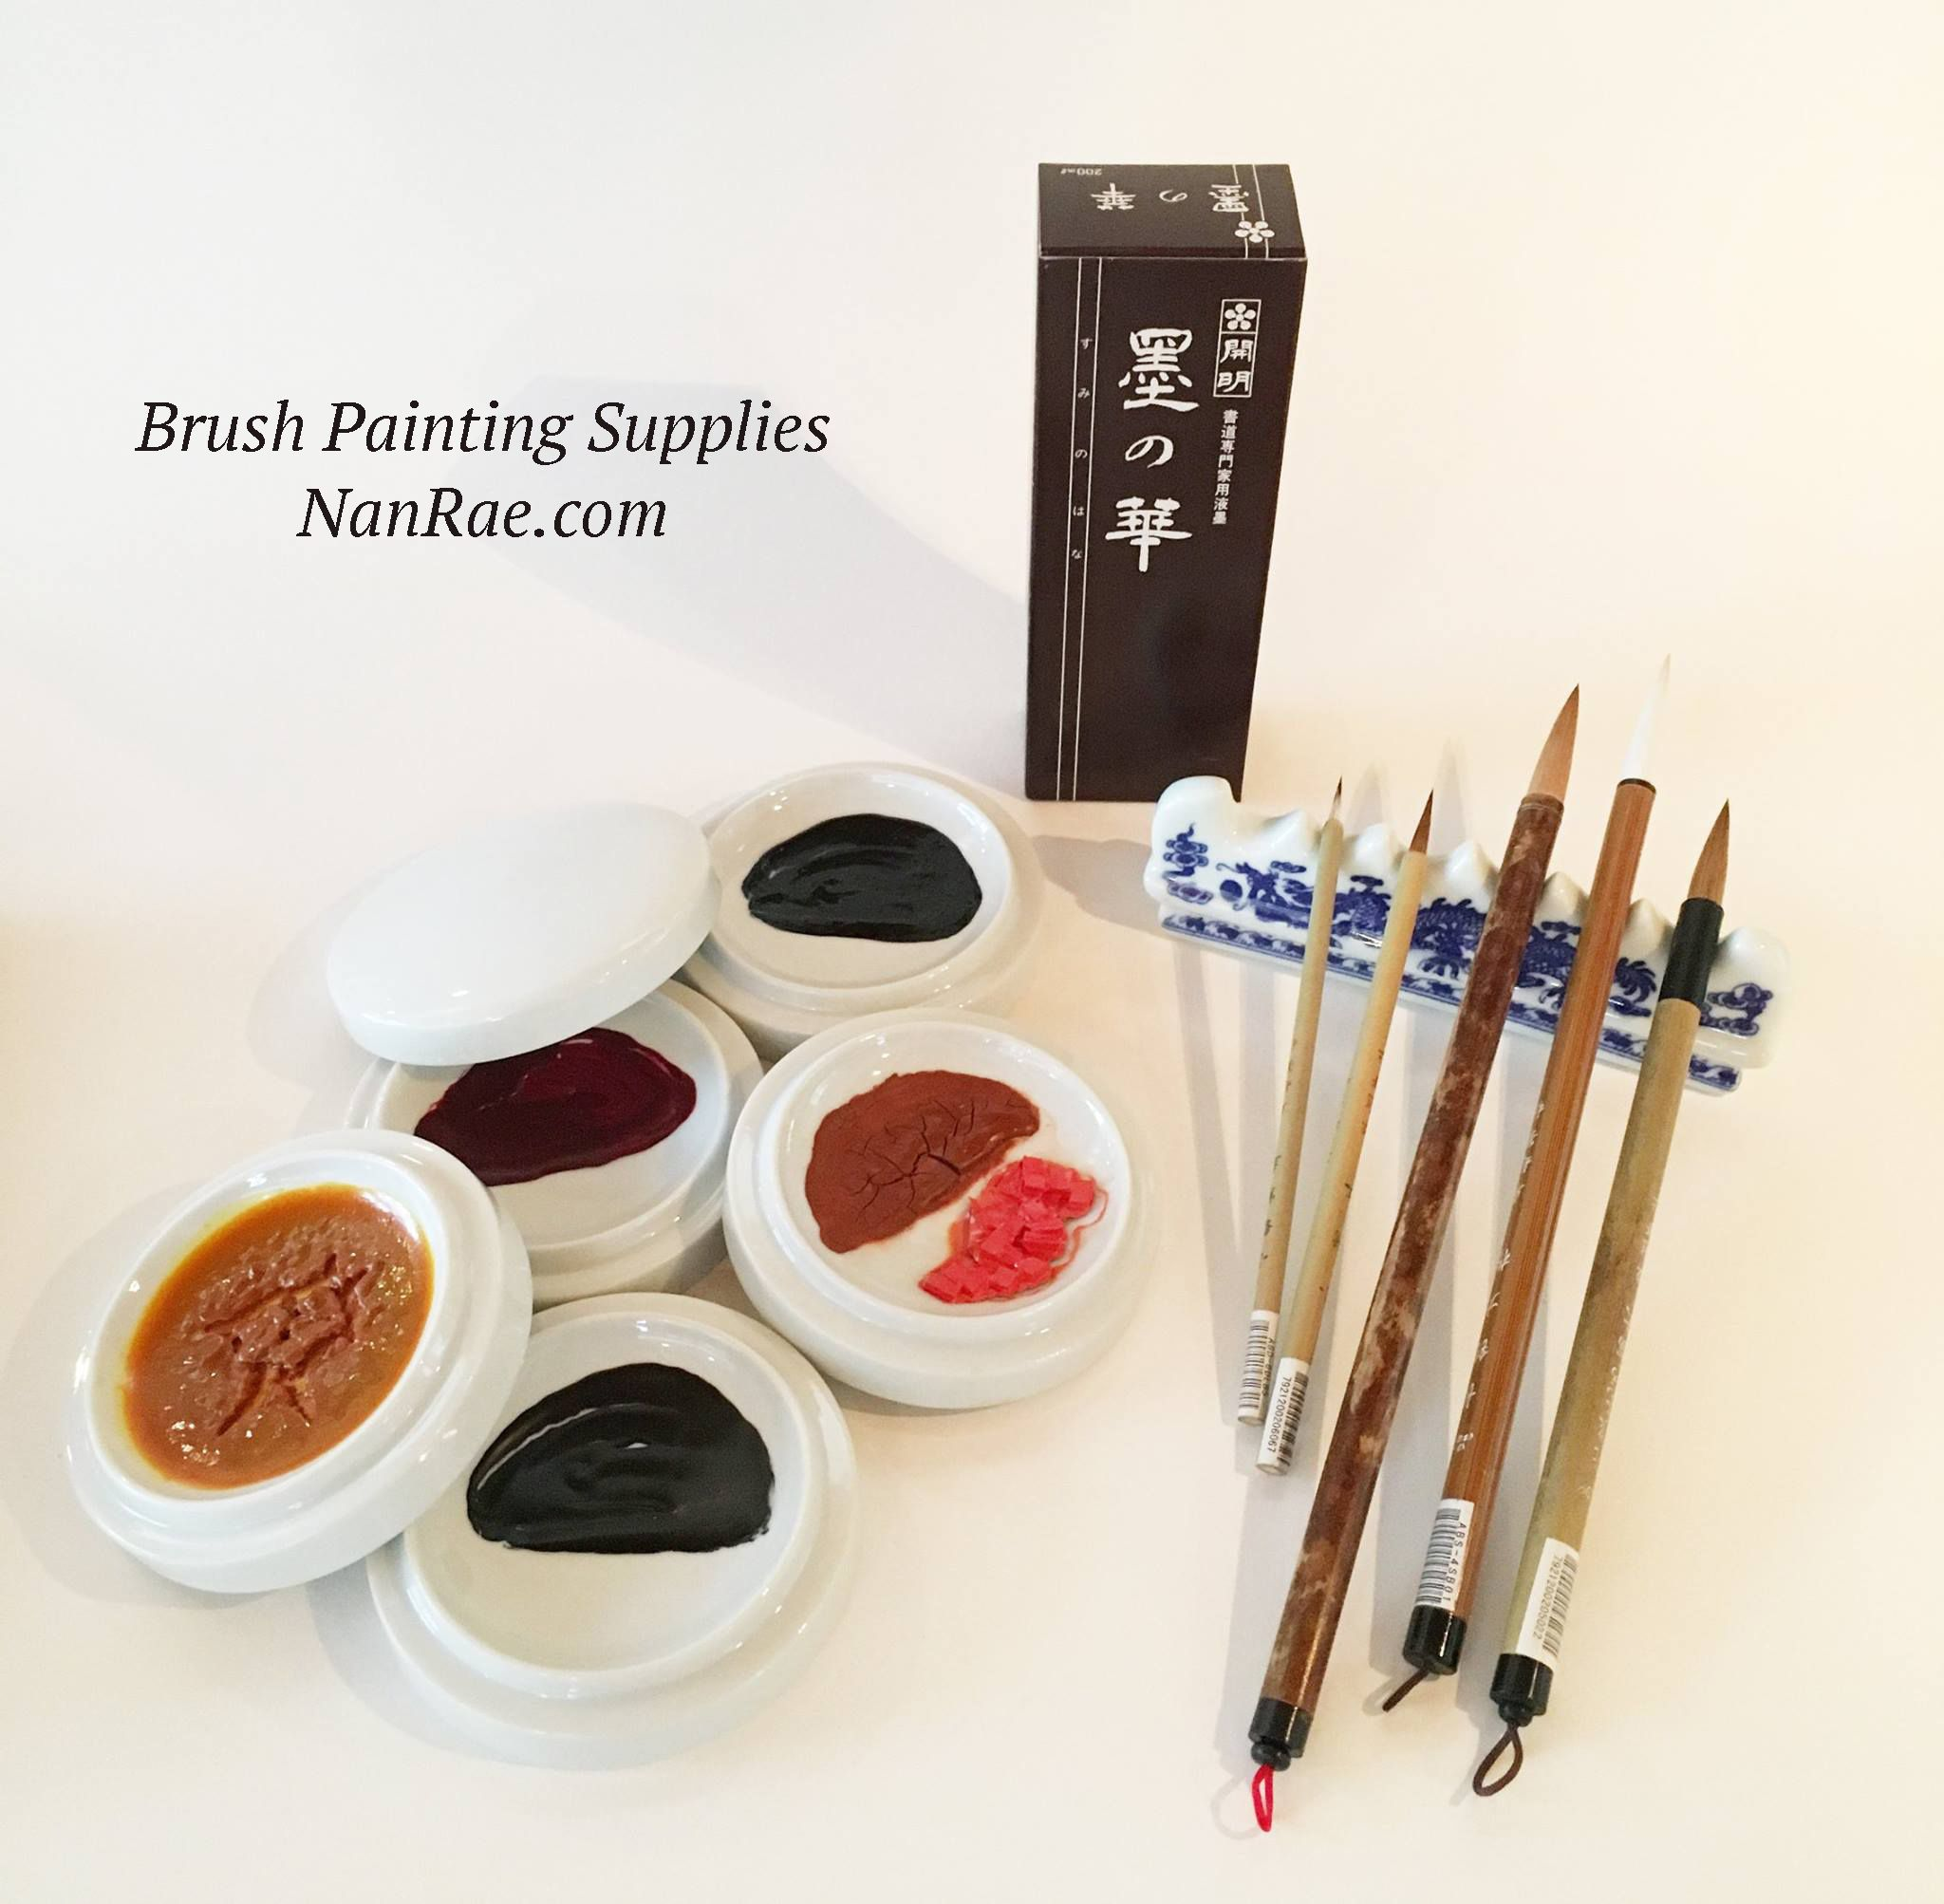 Brush Painting Supplies Dish Set 5 Basic Brush Set And Ink